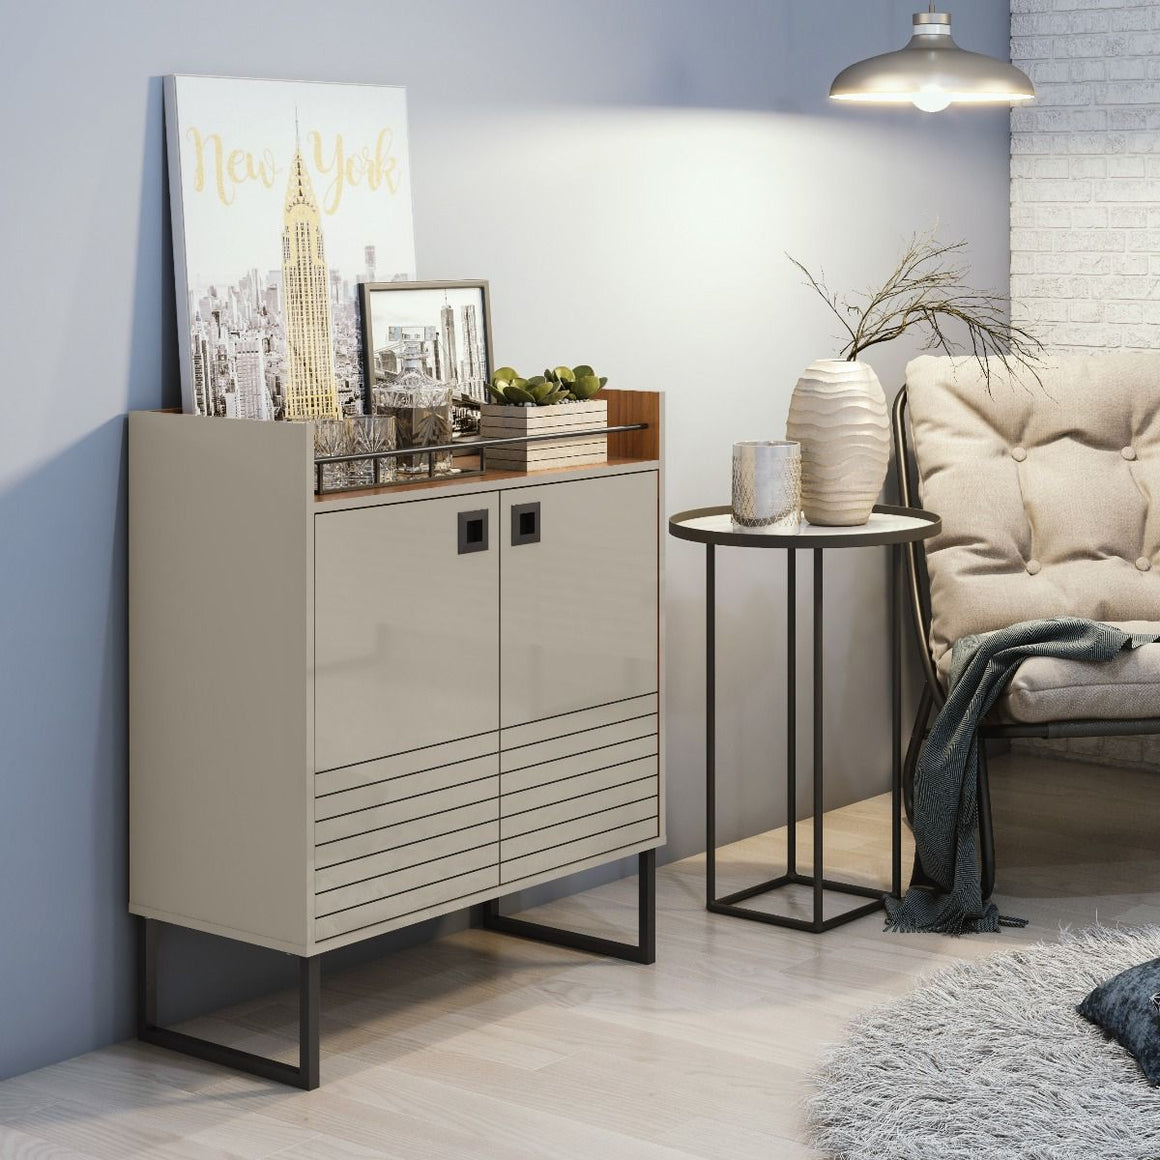 Loft 31.49 Modern Buffet Stand with Safety Display Shelf and Steel Legs in Off White and Wood